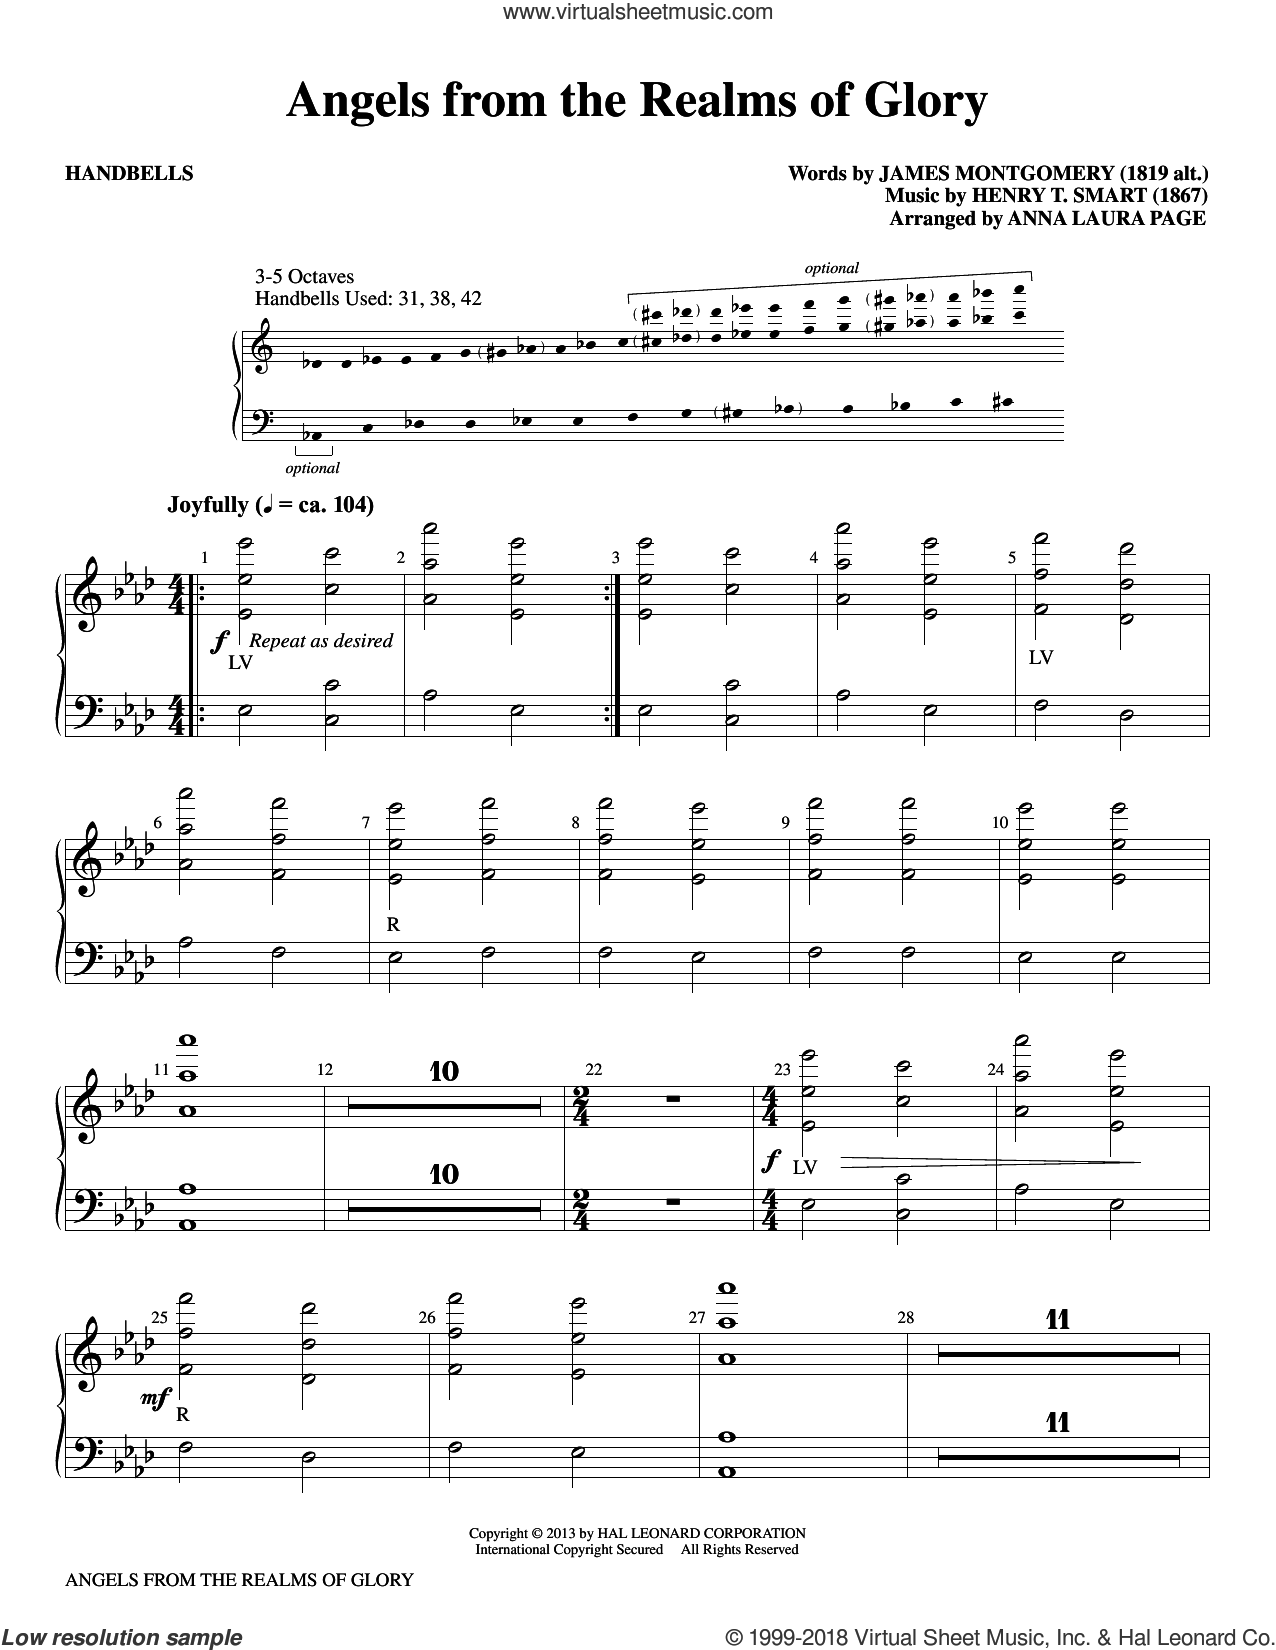 Angels From The Realms Of Glory sheet music for percussions by Anna Laura Page, Henry T. Smart and James Montgomery. Score Image Preview.